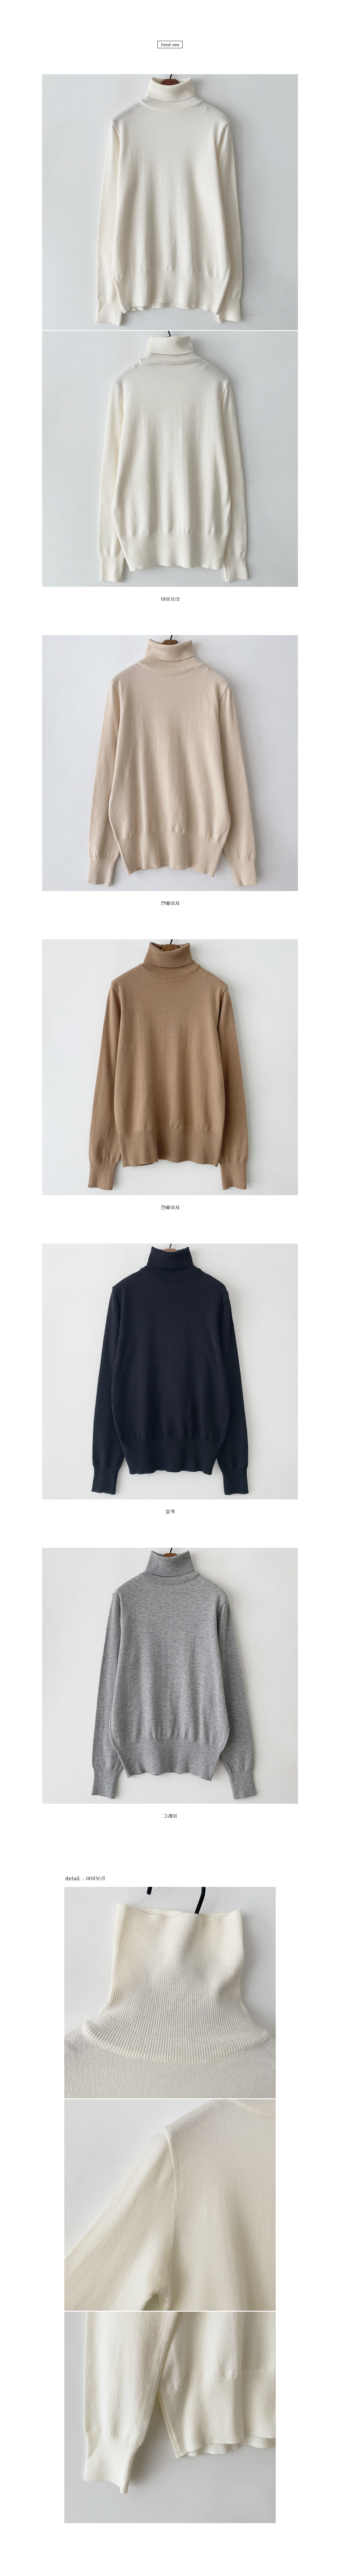 Mate Basic Turtleneck Knitwear